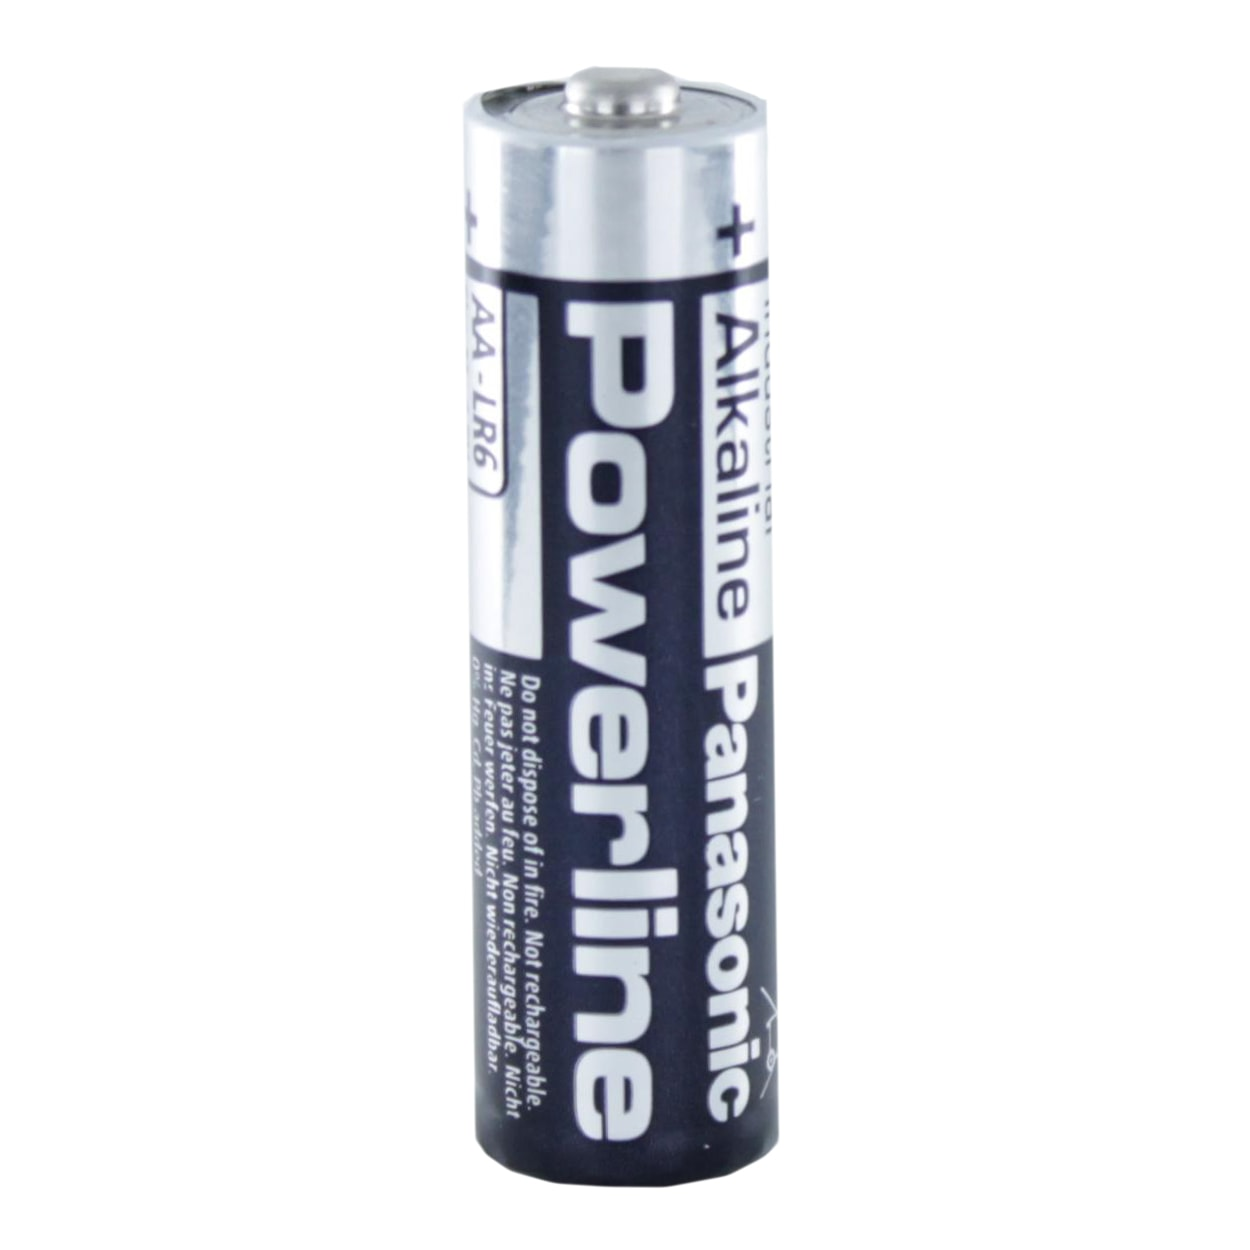 Panasonic Powerline AA Battery